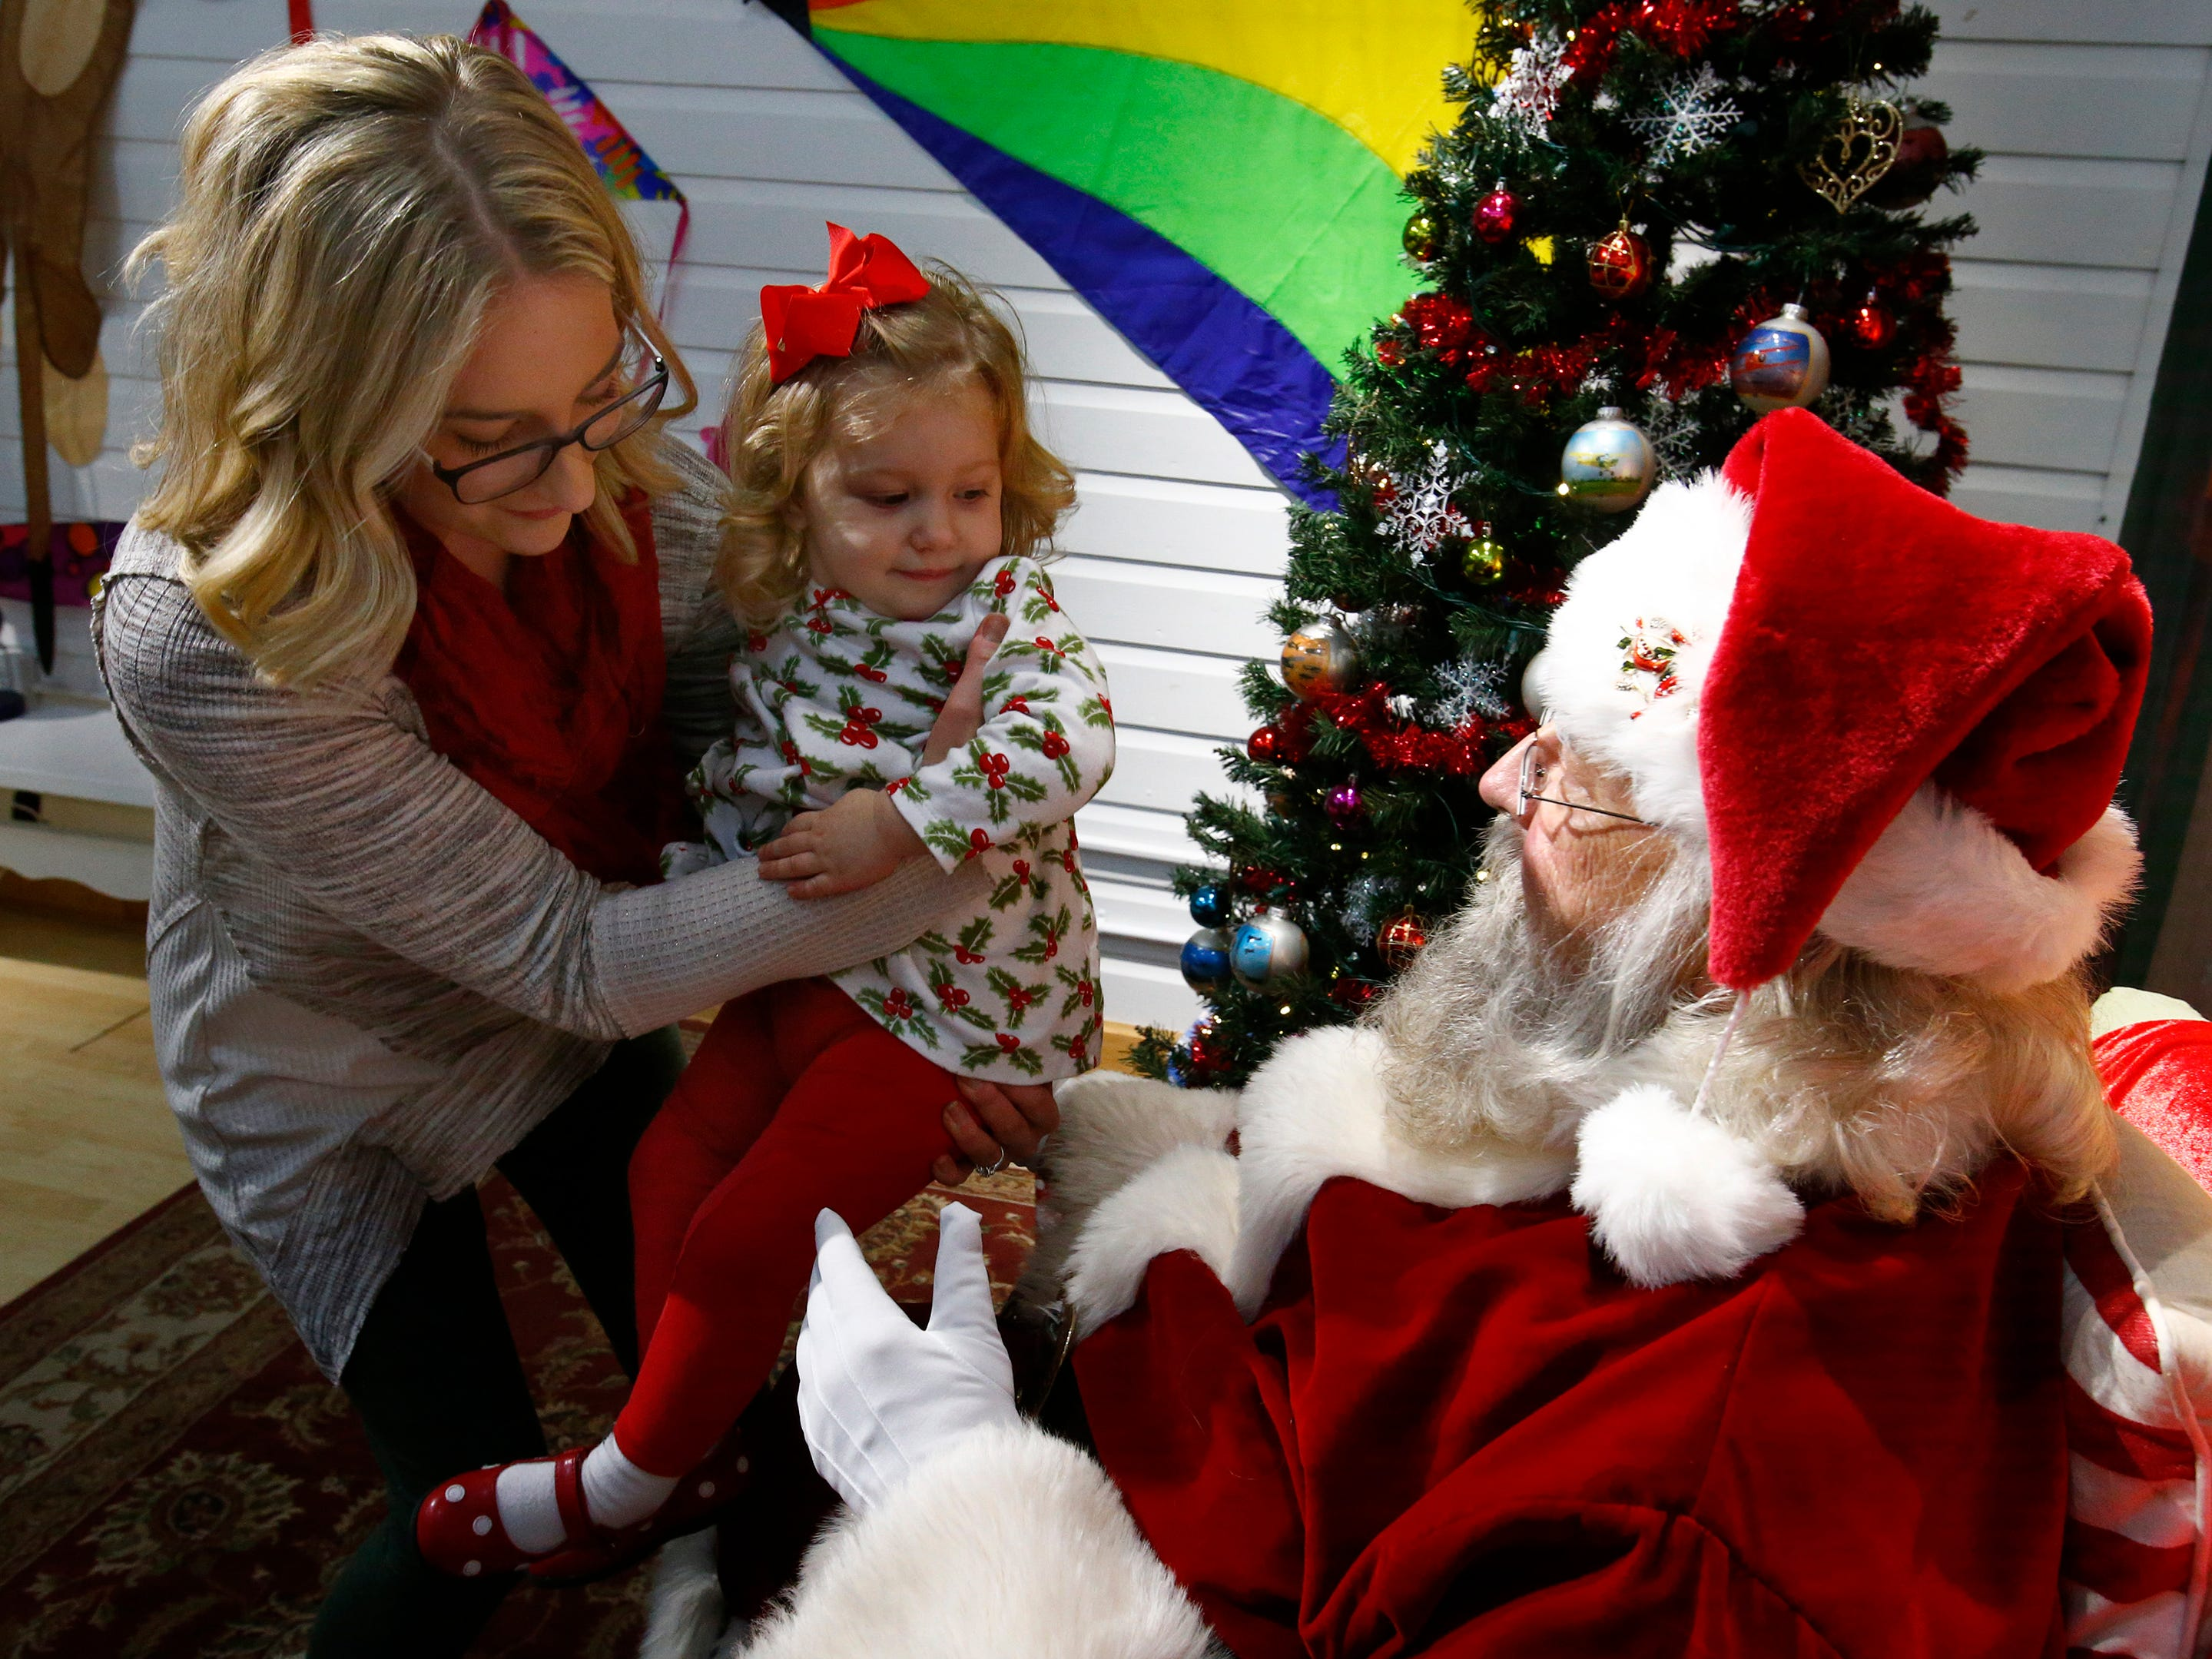 Karen Kurtz helps daughter Eleanor up for a visit with Santa at Gifts of Wings during Greendale's Dickens of a Christmas Festival on Nov. 30.